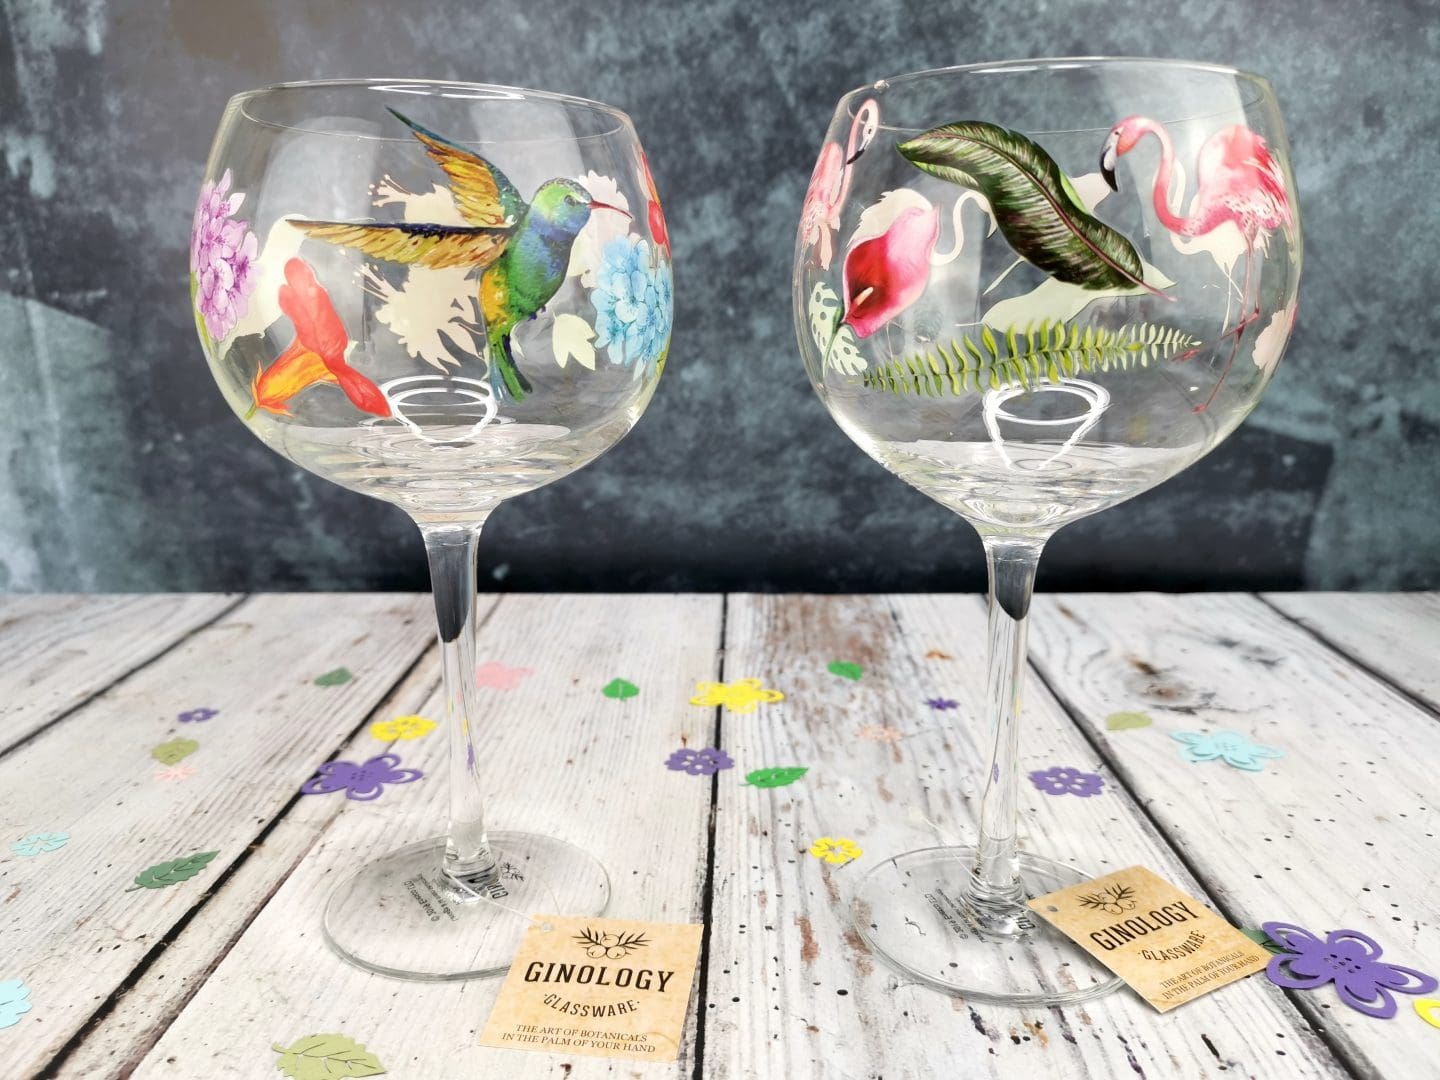 Ginology Glasses